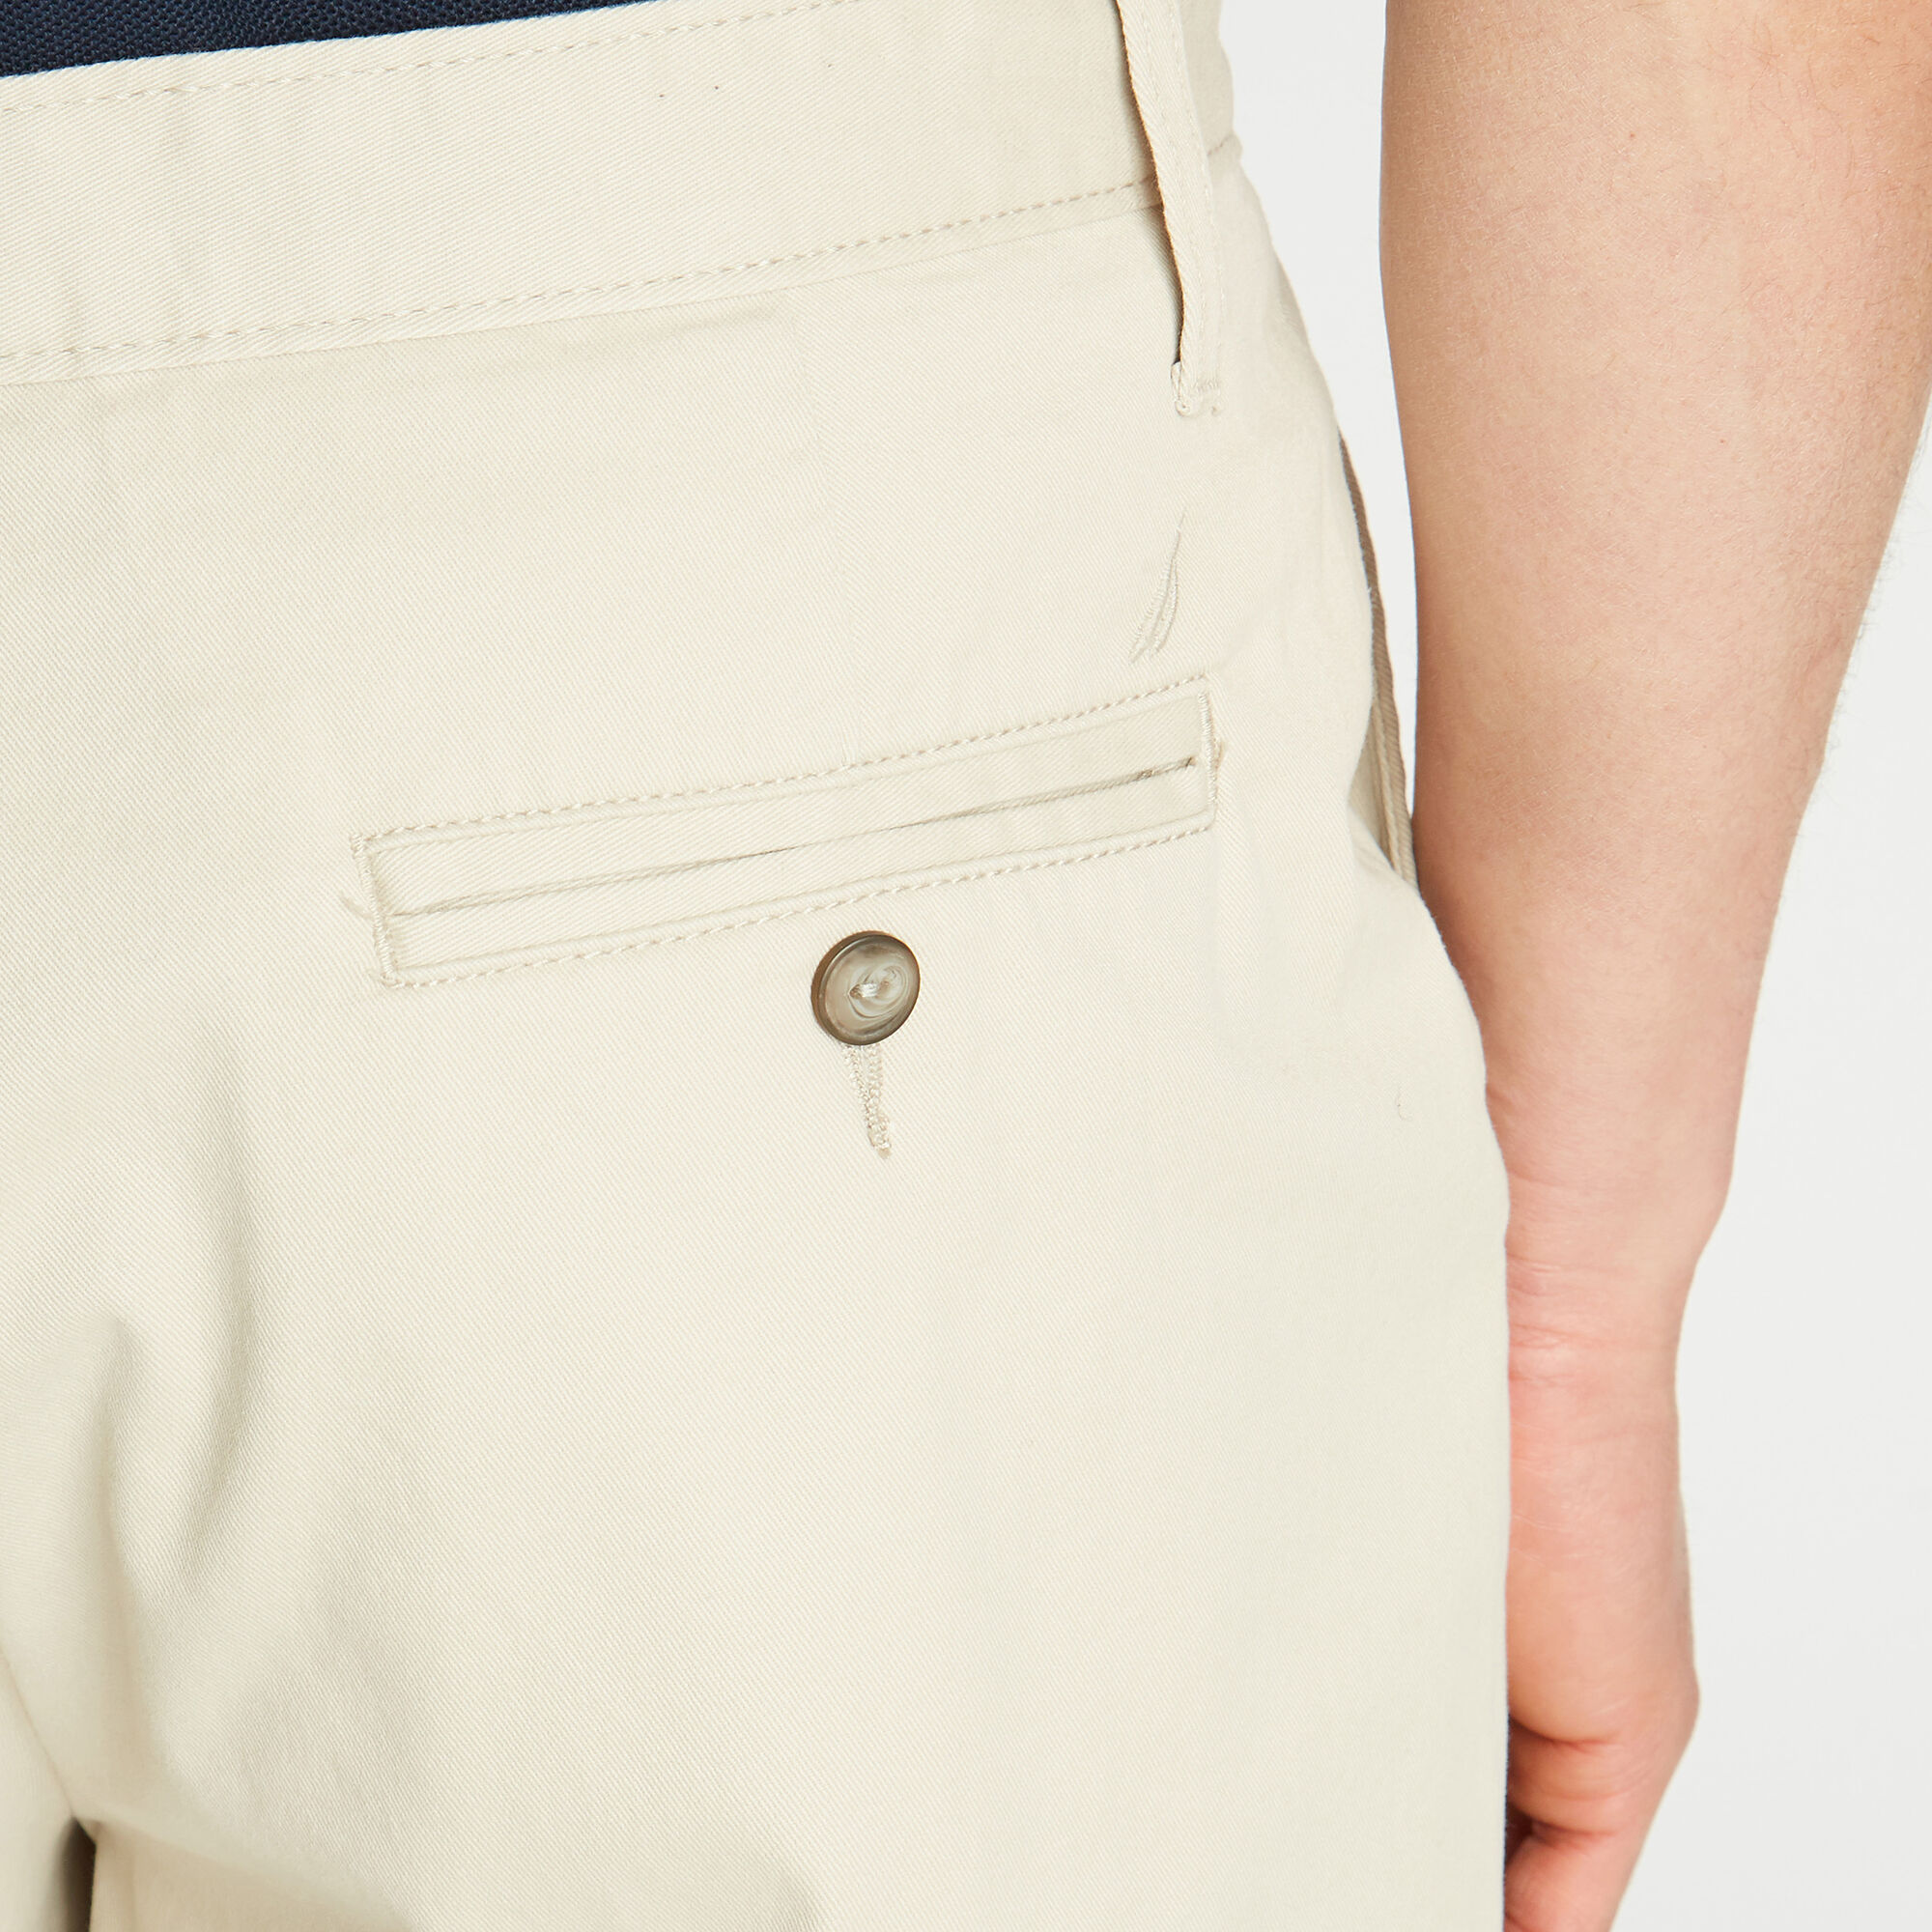 Nautica-Mens-8-5-034-Classic-Fit-Deck-Short-With-Stretch thumbnail 56